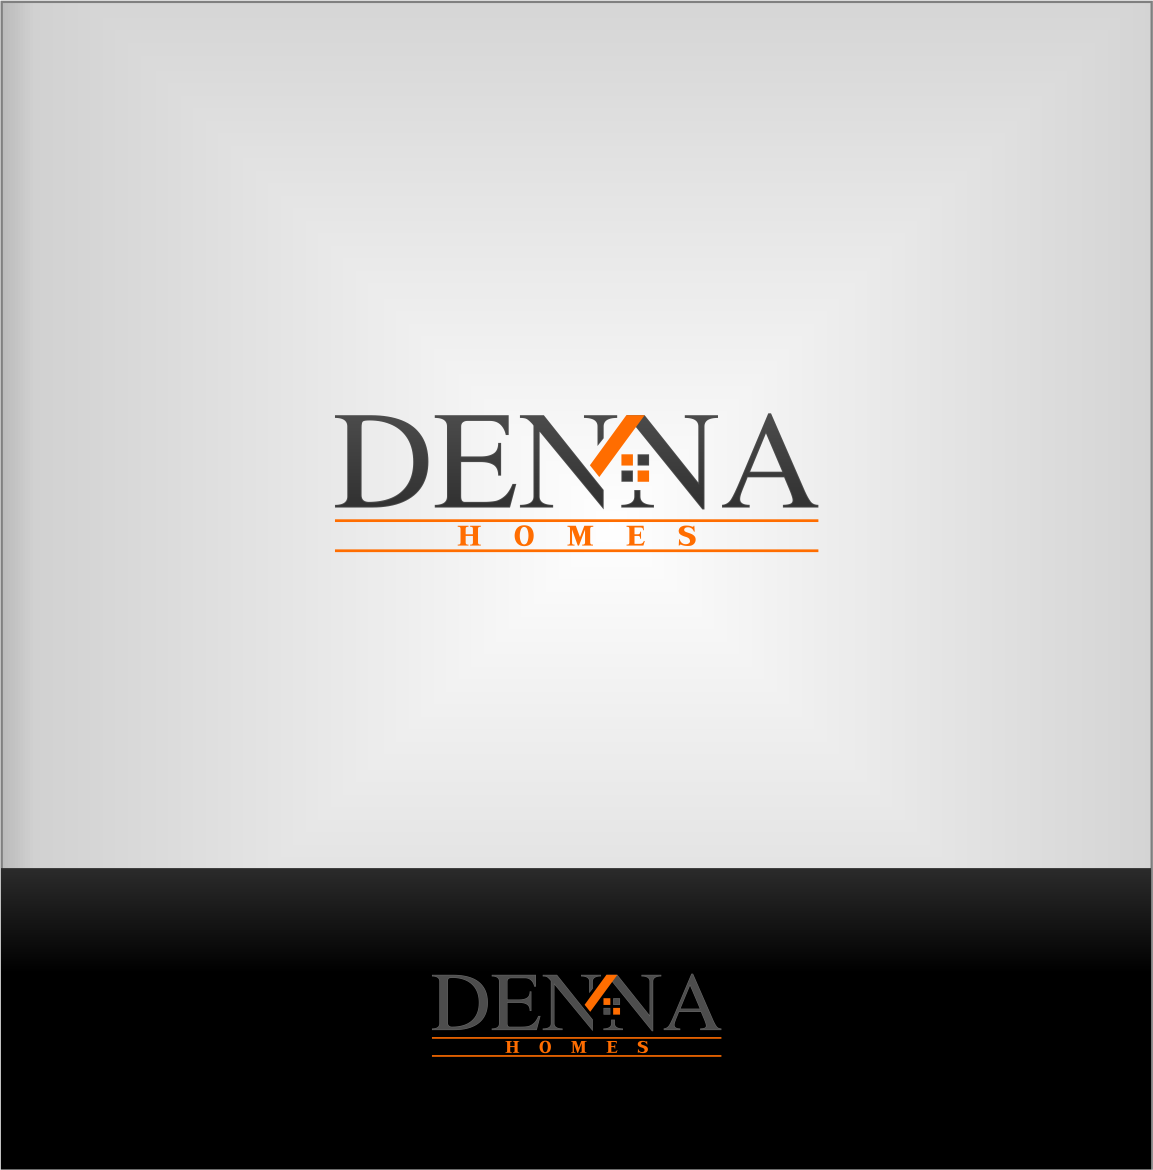 Logo Design by Private User - Entry No. 342 in the Logo Design Contest Denna Group Logo Design.